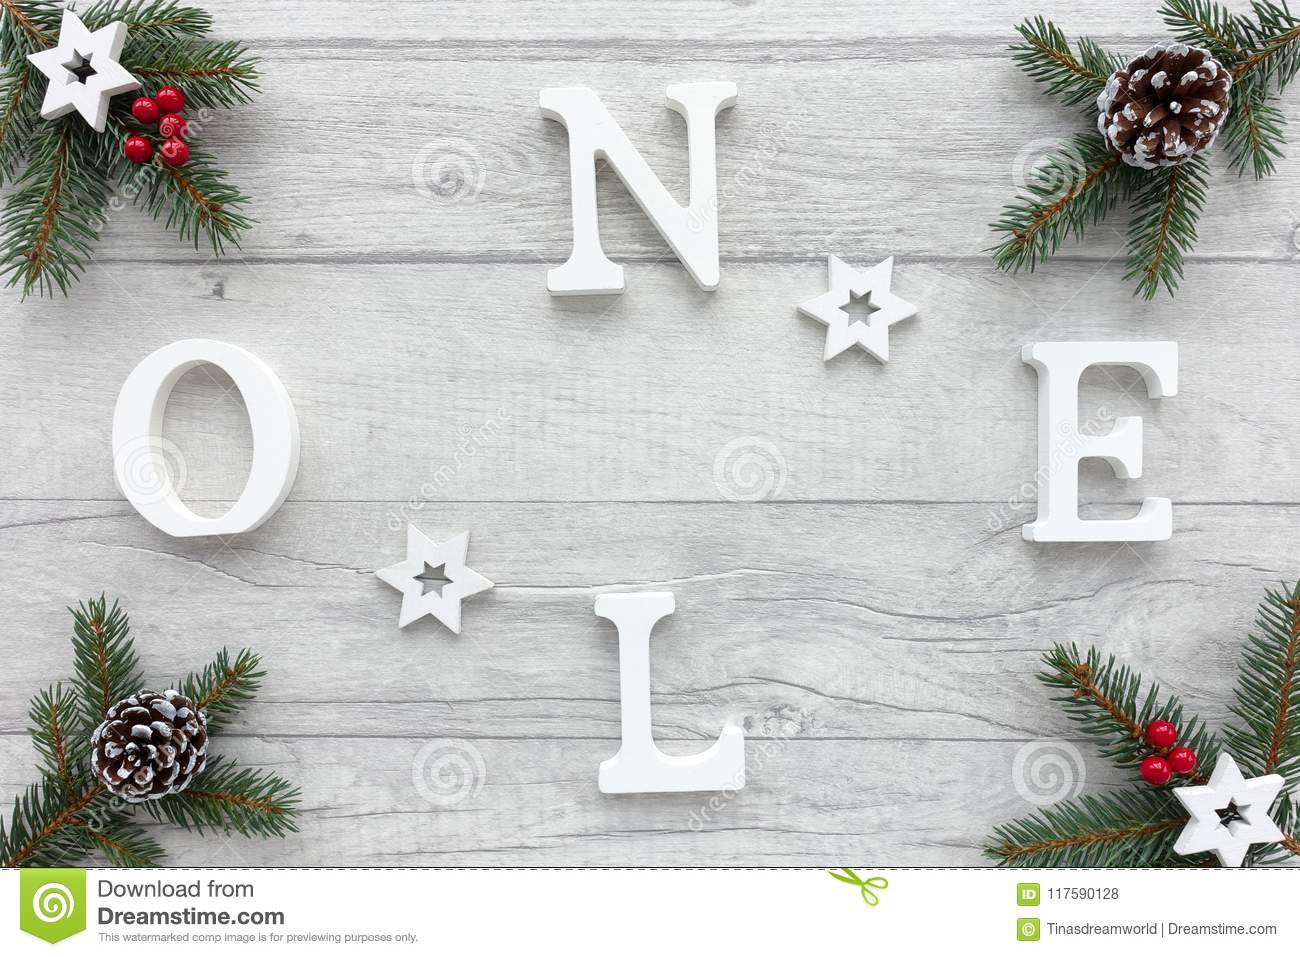 Noel Written On Christmas Background With Christmas Decoration Stock